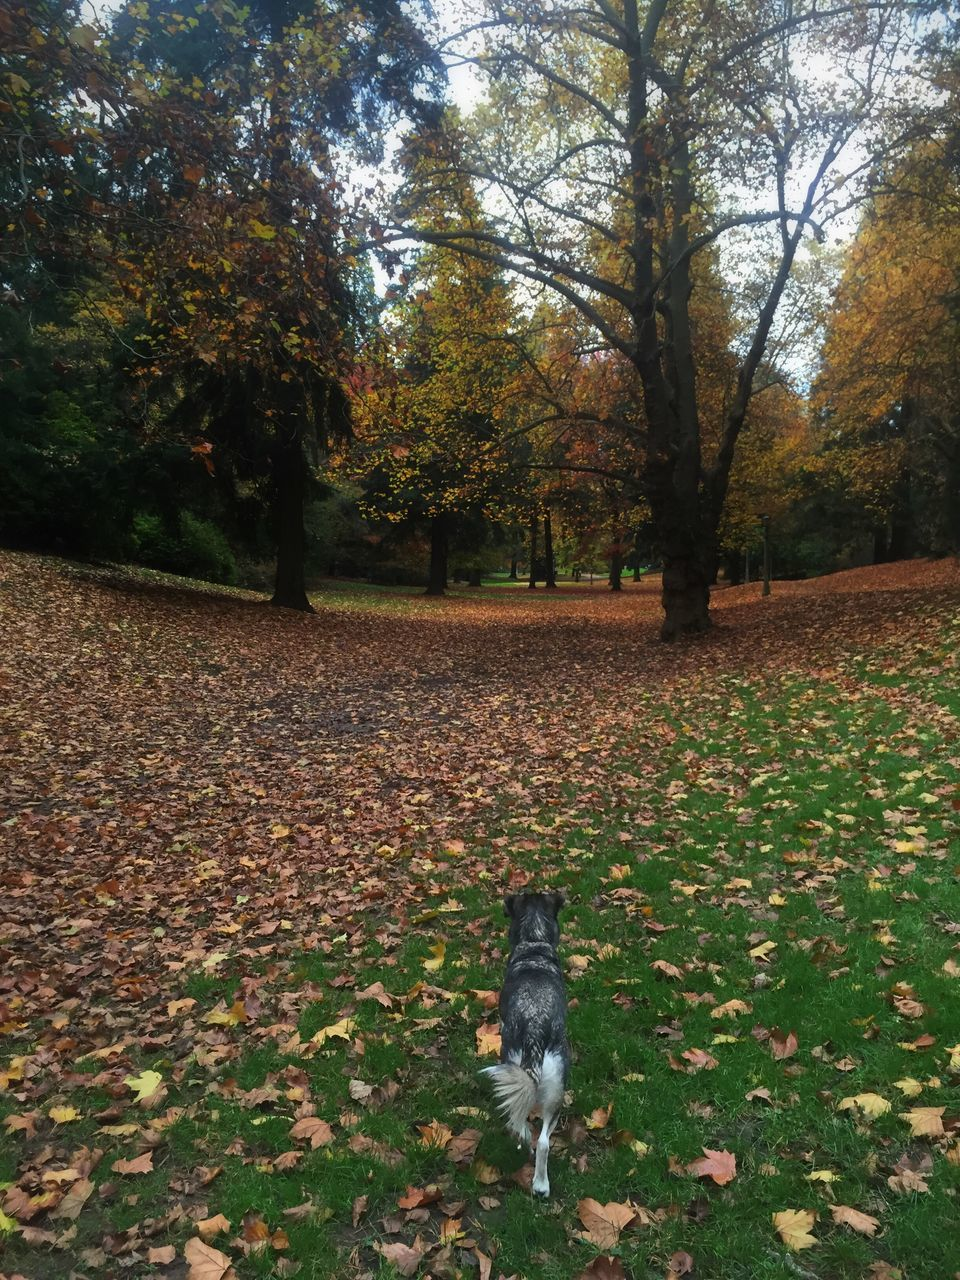 autumn, pets, dog, change, leaf, tree, domestic animals, nature, one animal, animal themes, outdoors, park - man made space, day, no people, beauty in nature, field, mammal, growth